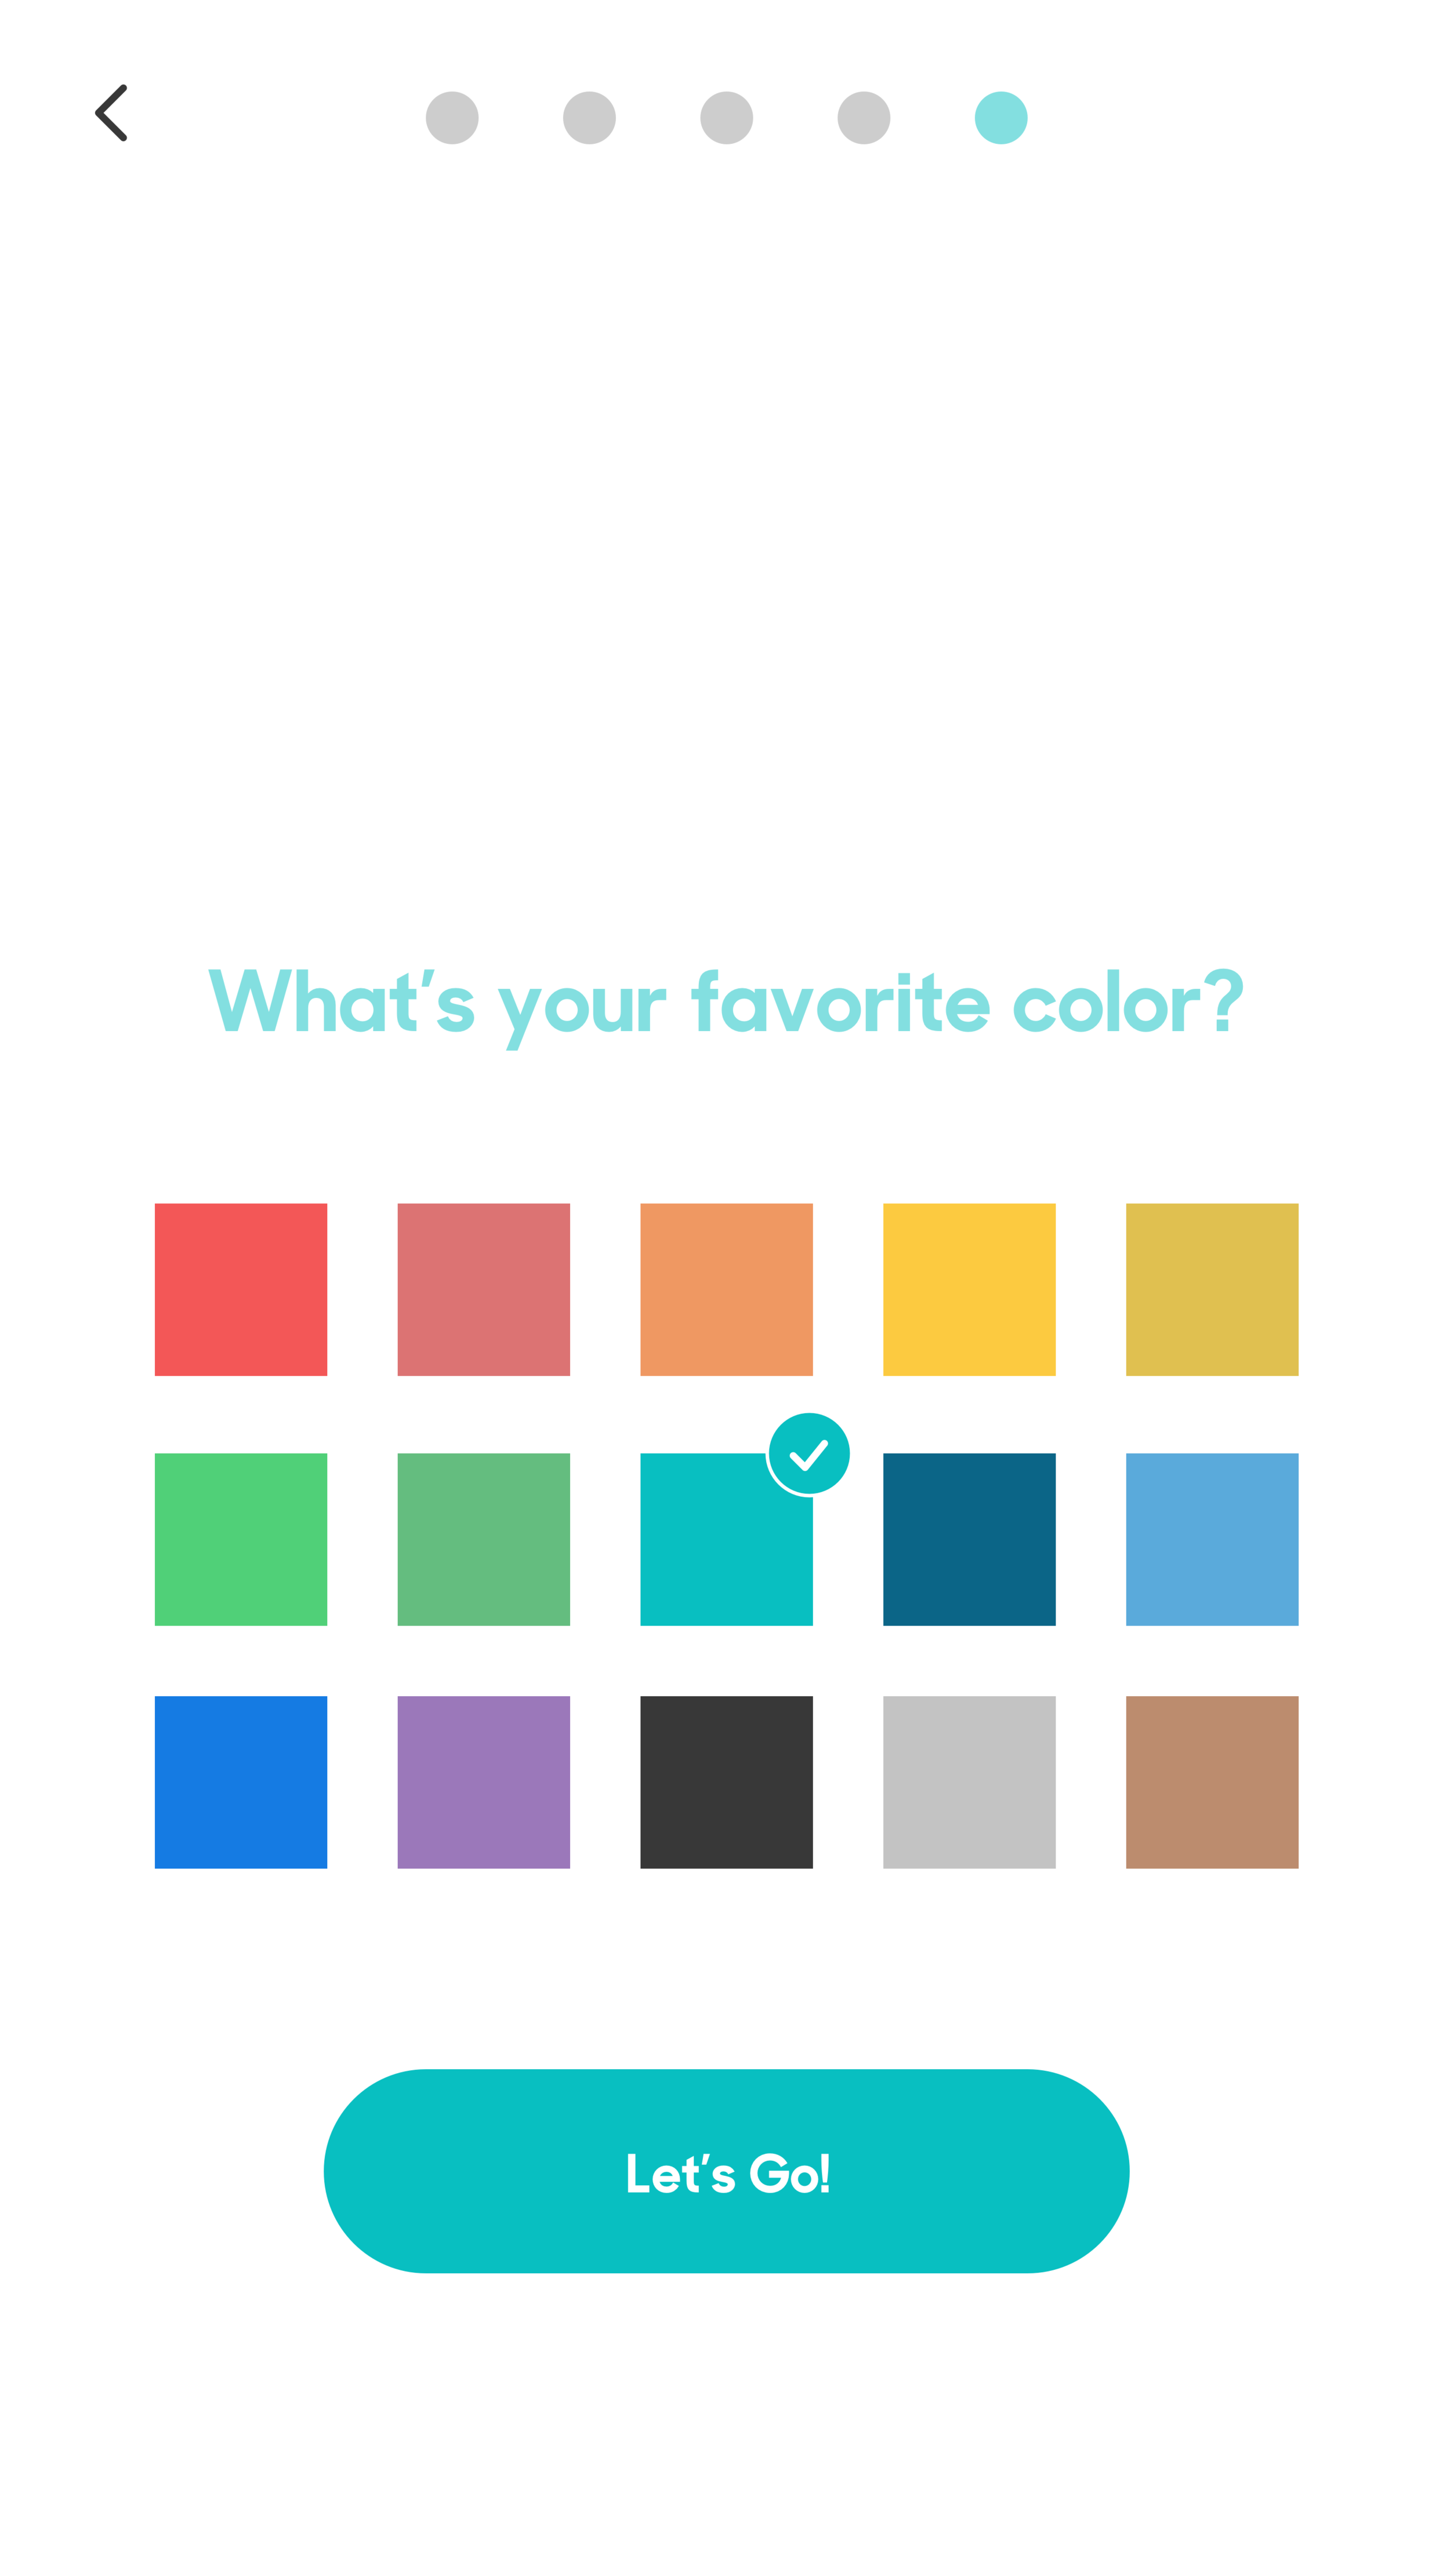 An ideated level of customization was to choose a favorite color which would in turn change the accent color in the app.